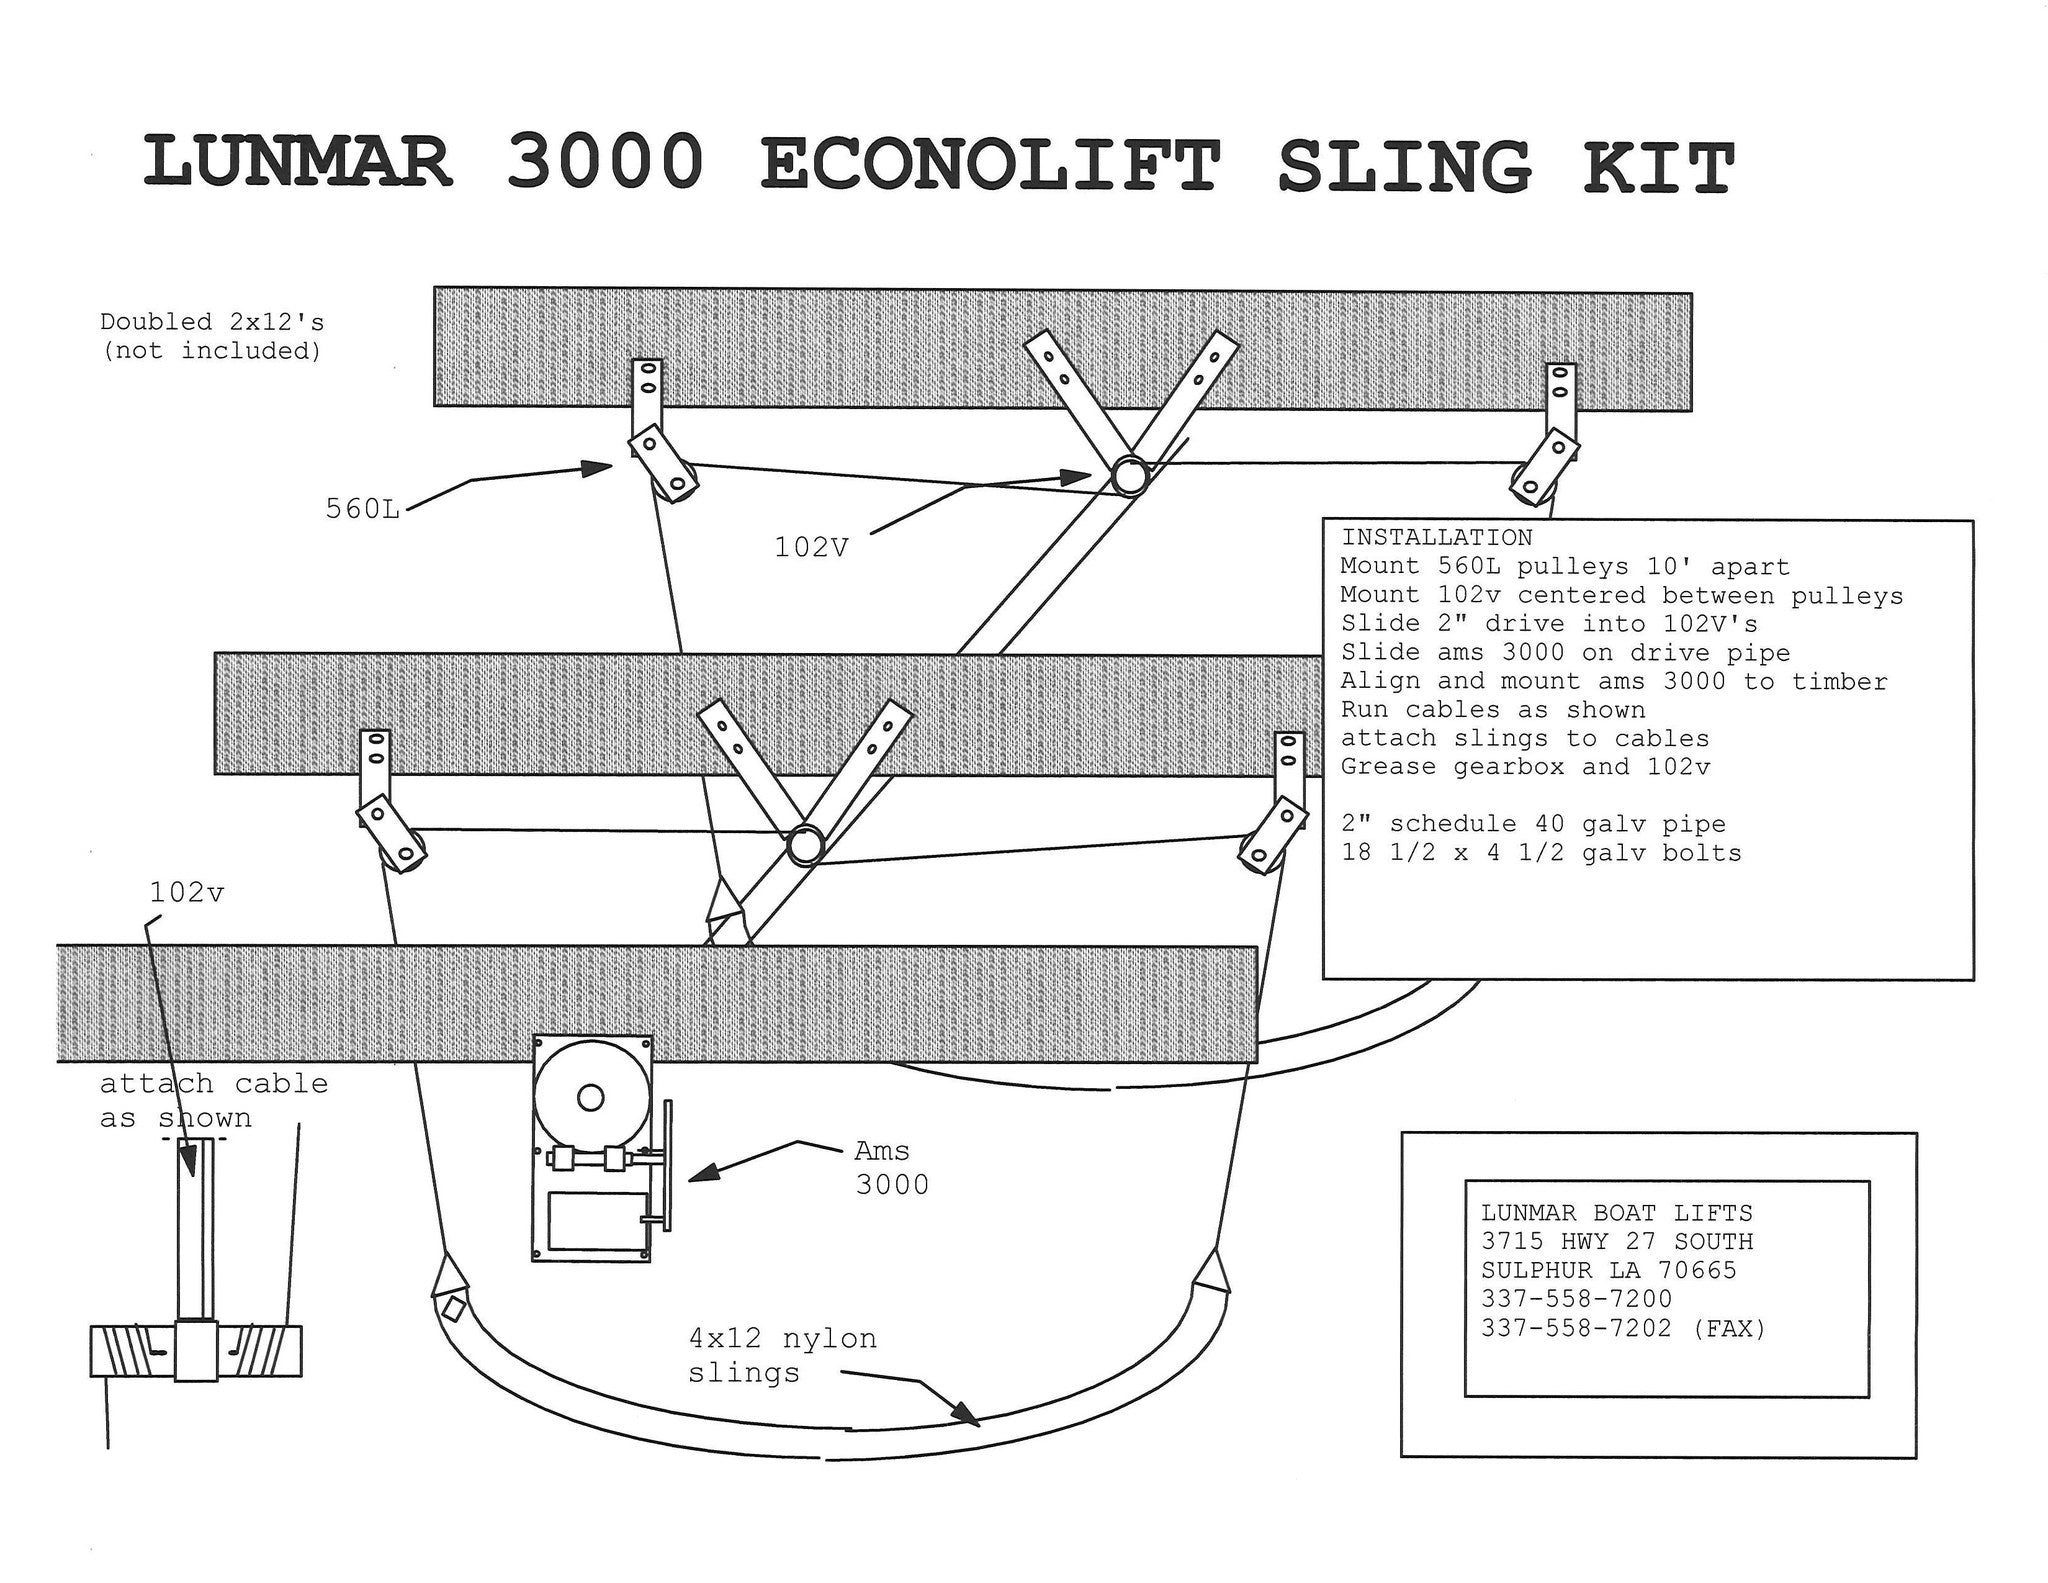 3000_Econo_Installation_Diagram boat lift wiring dolgular com  at readyjetset.co